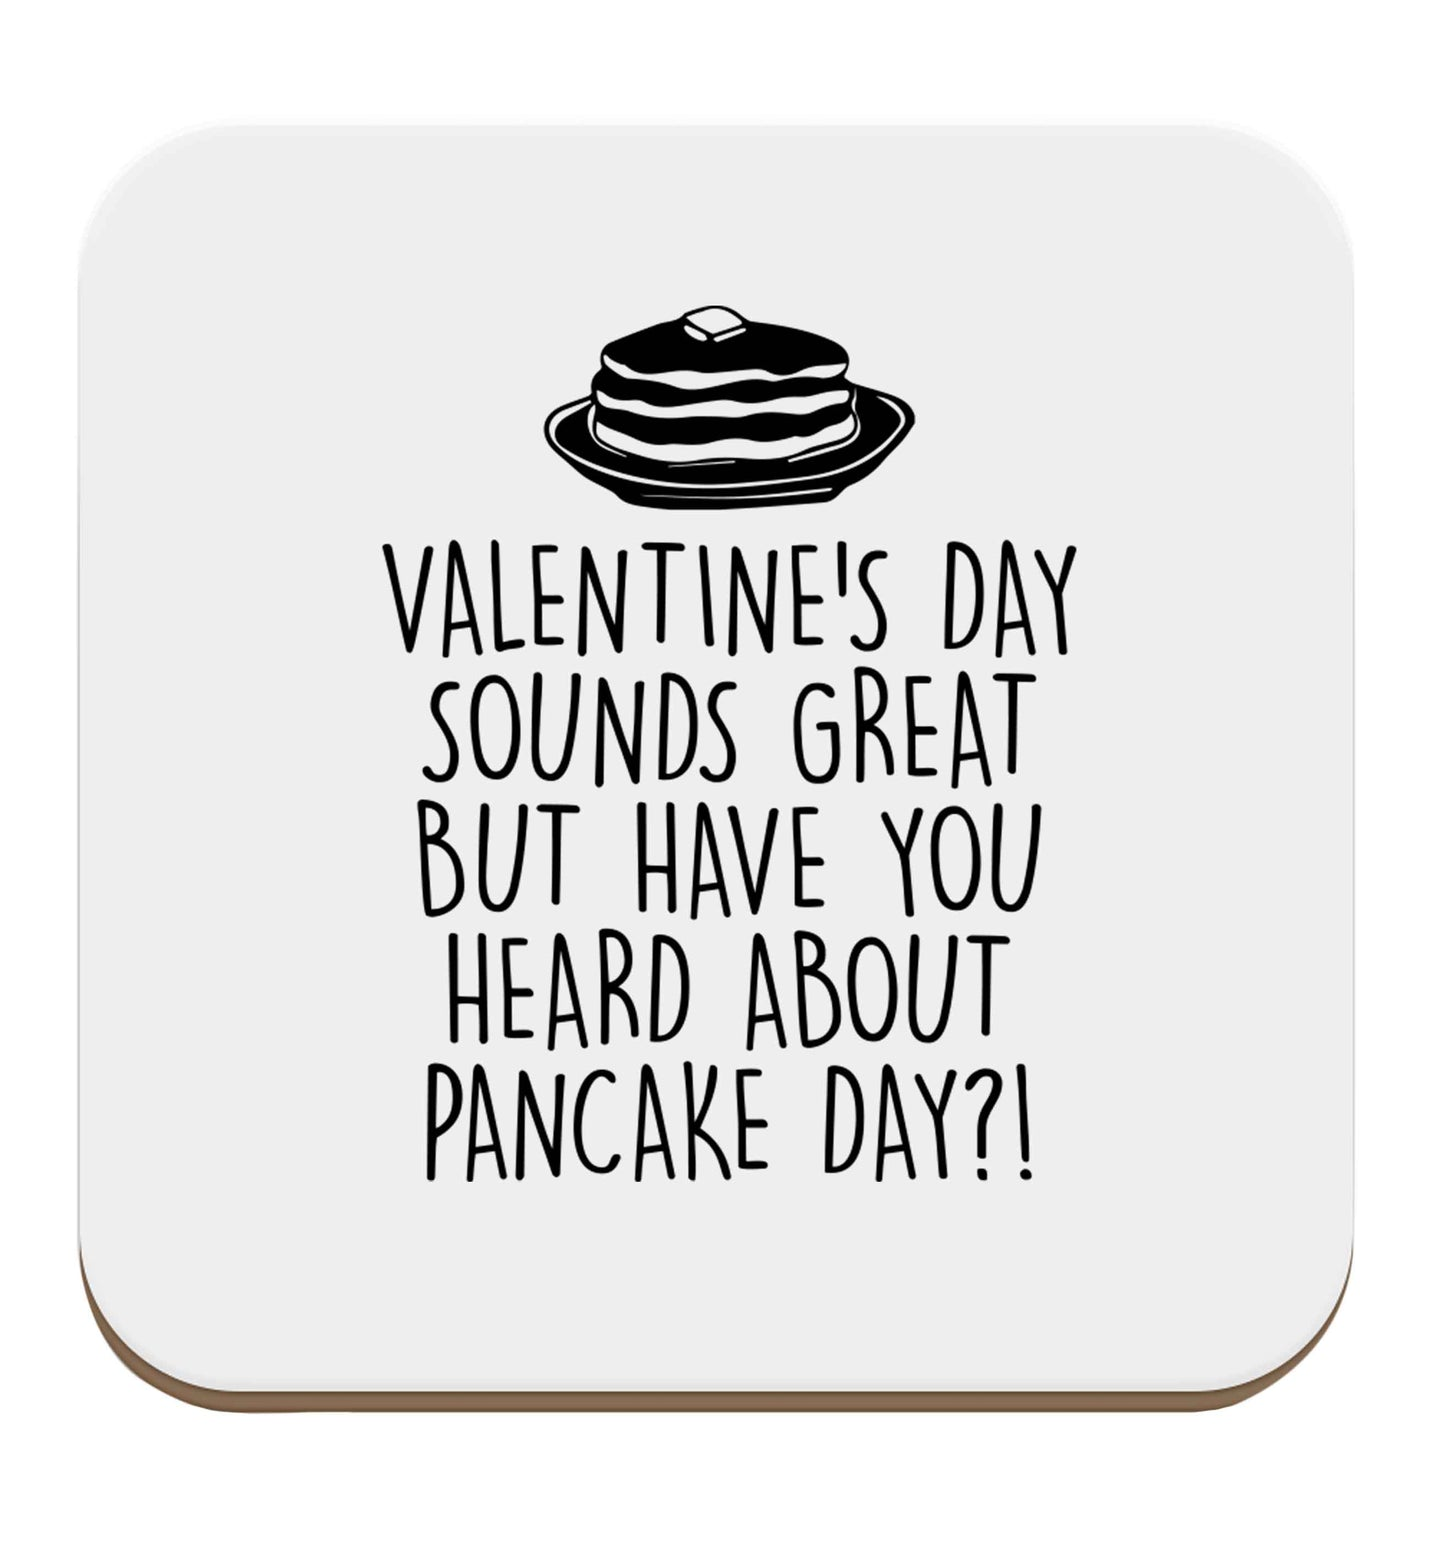 Valentine's day sounds great but have you heard about pancake day?! set of four coasters